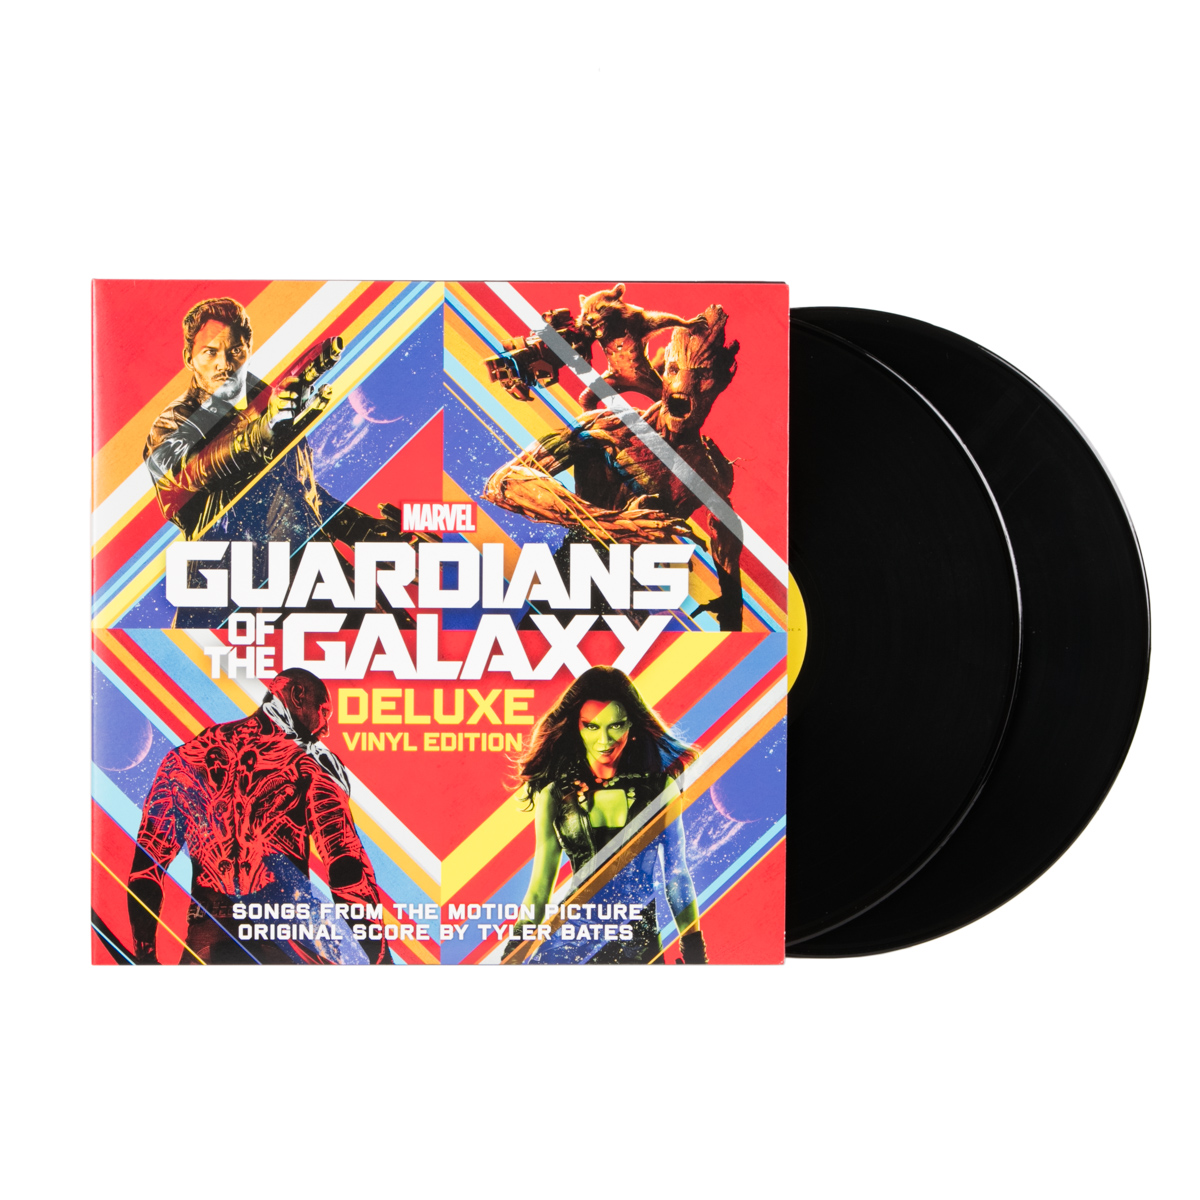 Guardians Of The Galaxy Deluxe Vinyl Edition Shop The